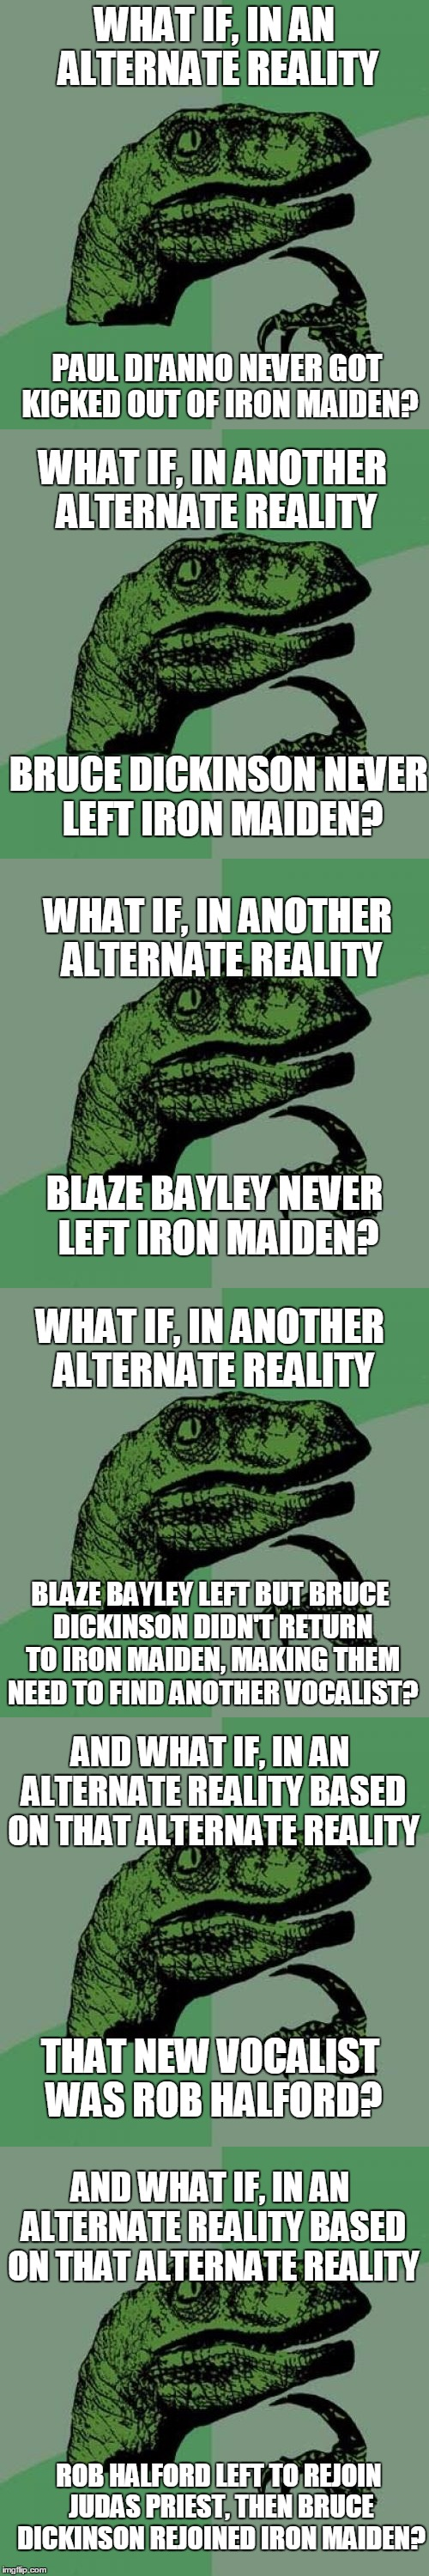 Making the alternate reality theory more fun! | WHAT IF, IN AN ALTERNATE REALITY PAUL DI'ANNO NEVER GOT KICKED OUT OF IRON MAIDEN? WHAT IF, IN ANOTHER ALTERNATE REALITY BRUCE DICKINSON NEV | image tagged in memes,philosoraptor,iron maiden,deep thoughts,alternate reality,heavy metal | made w/ Imgflip meme maker